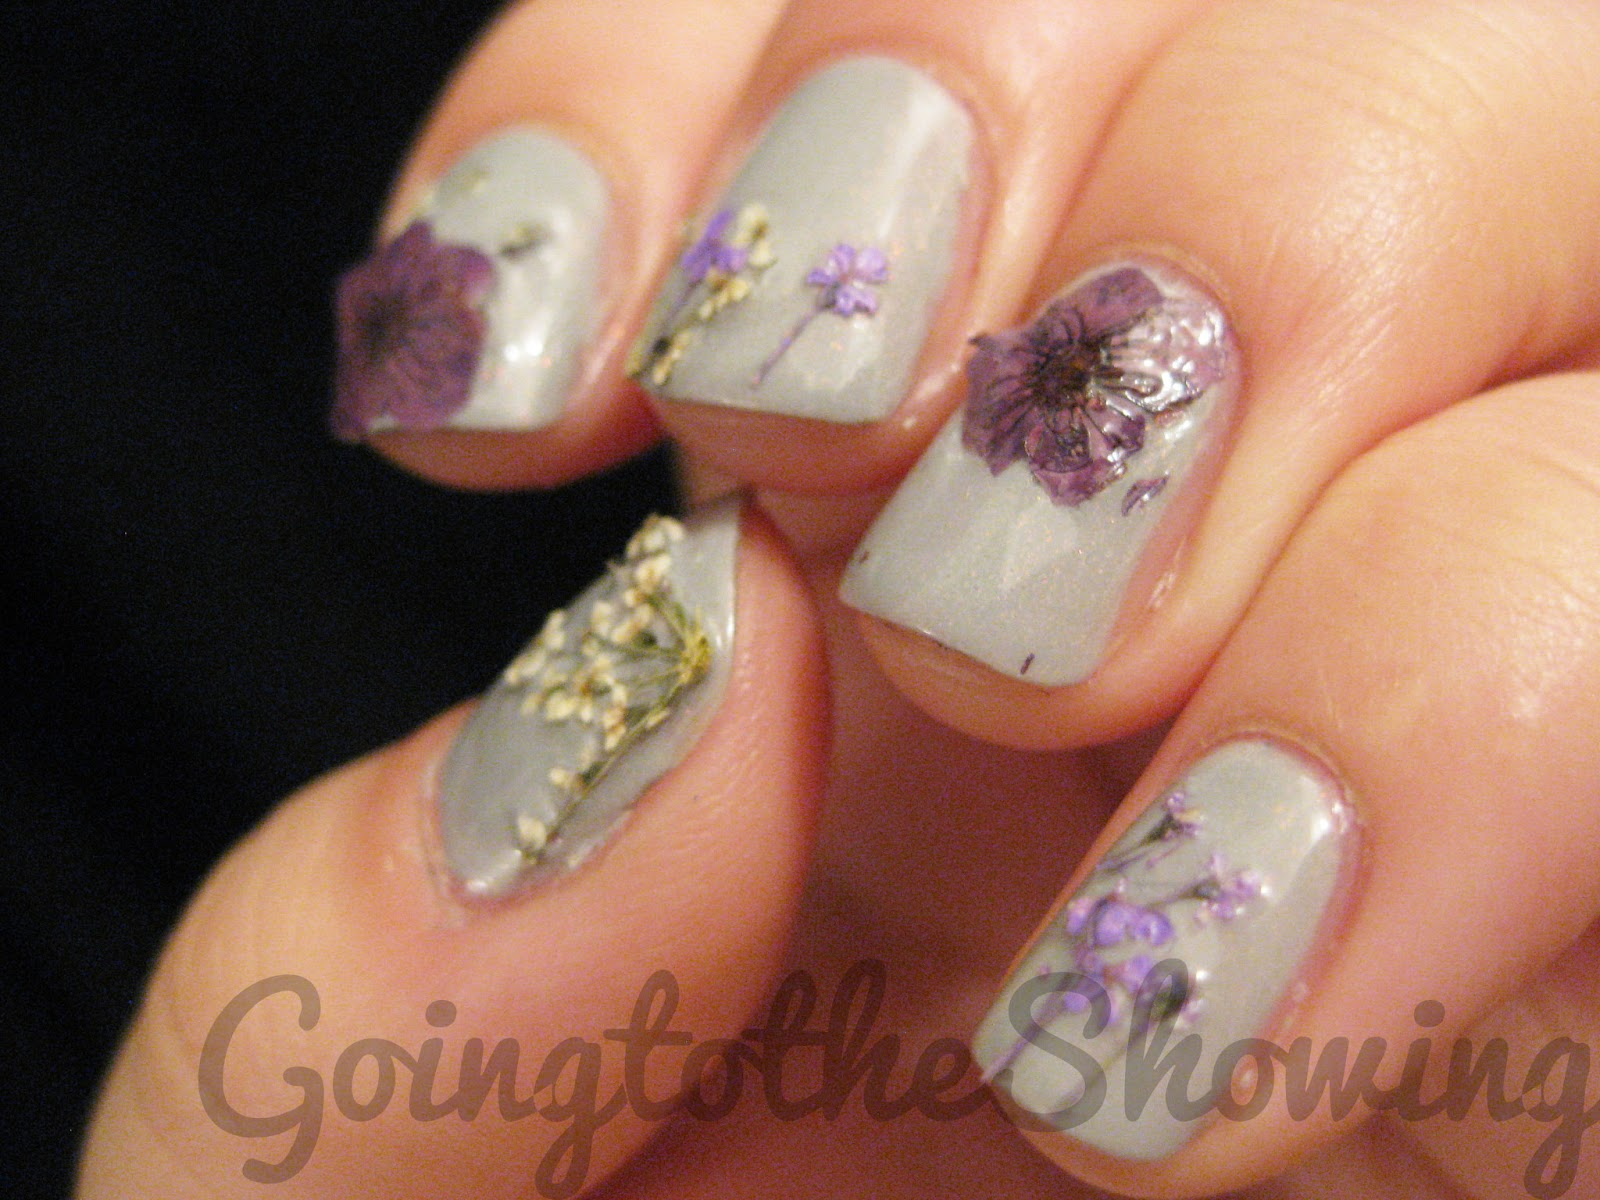 Born pretty store dried flower nail art review goingtotheshowing prinsesfo Gallery